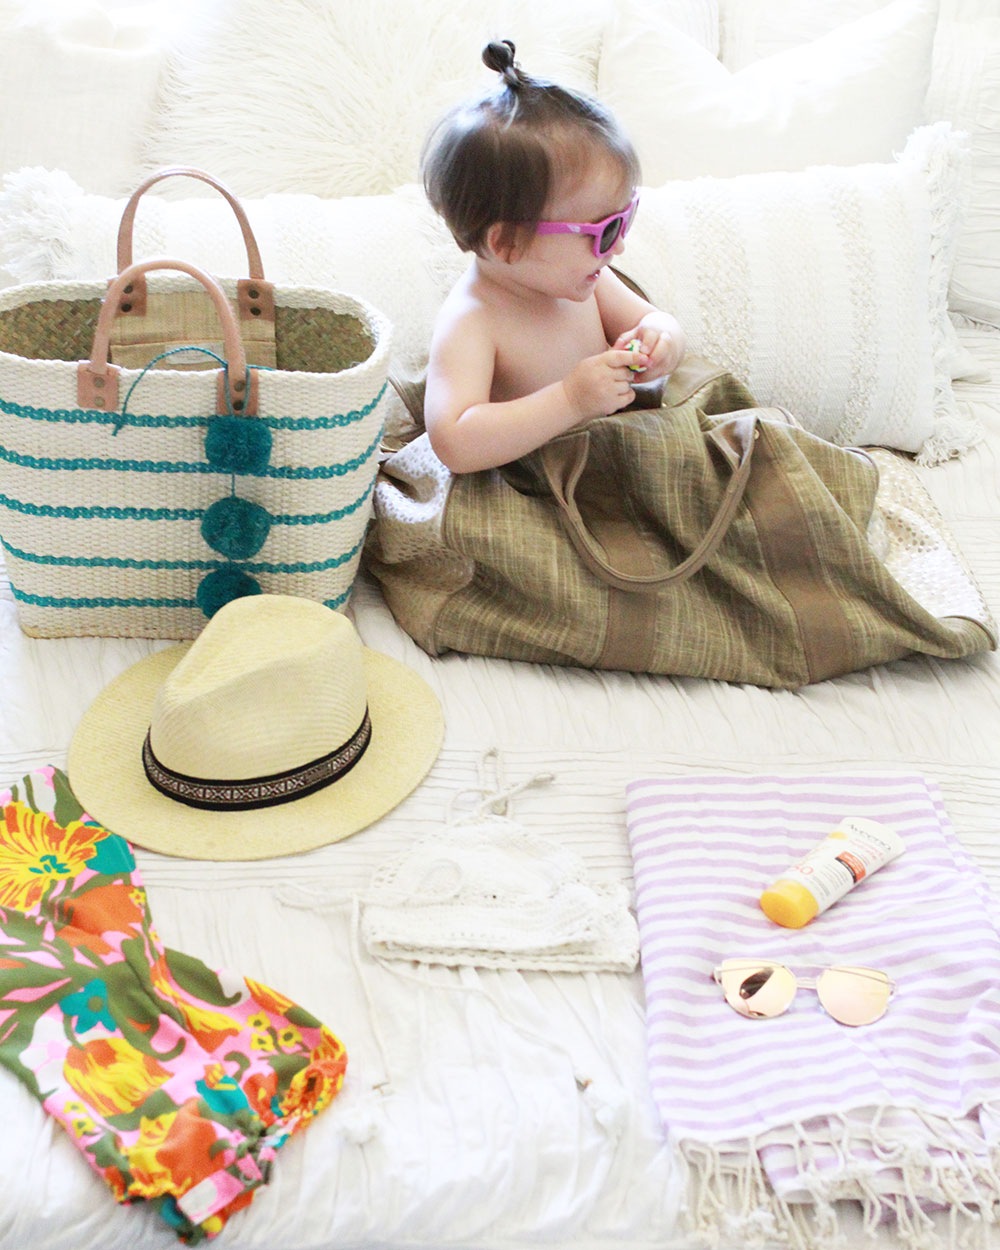 packing for staycation with my babe | thelovedesignedlife.com